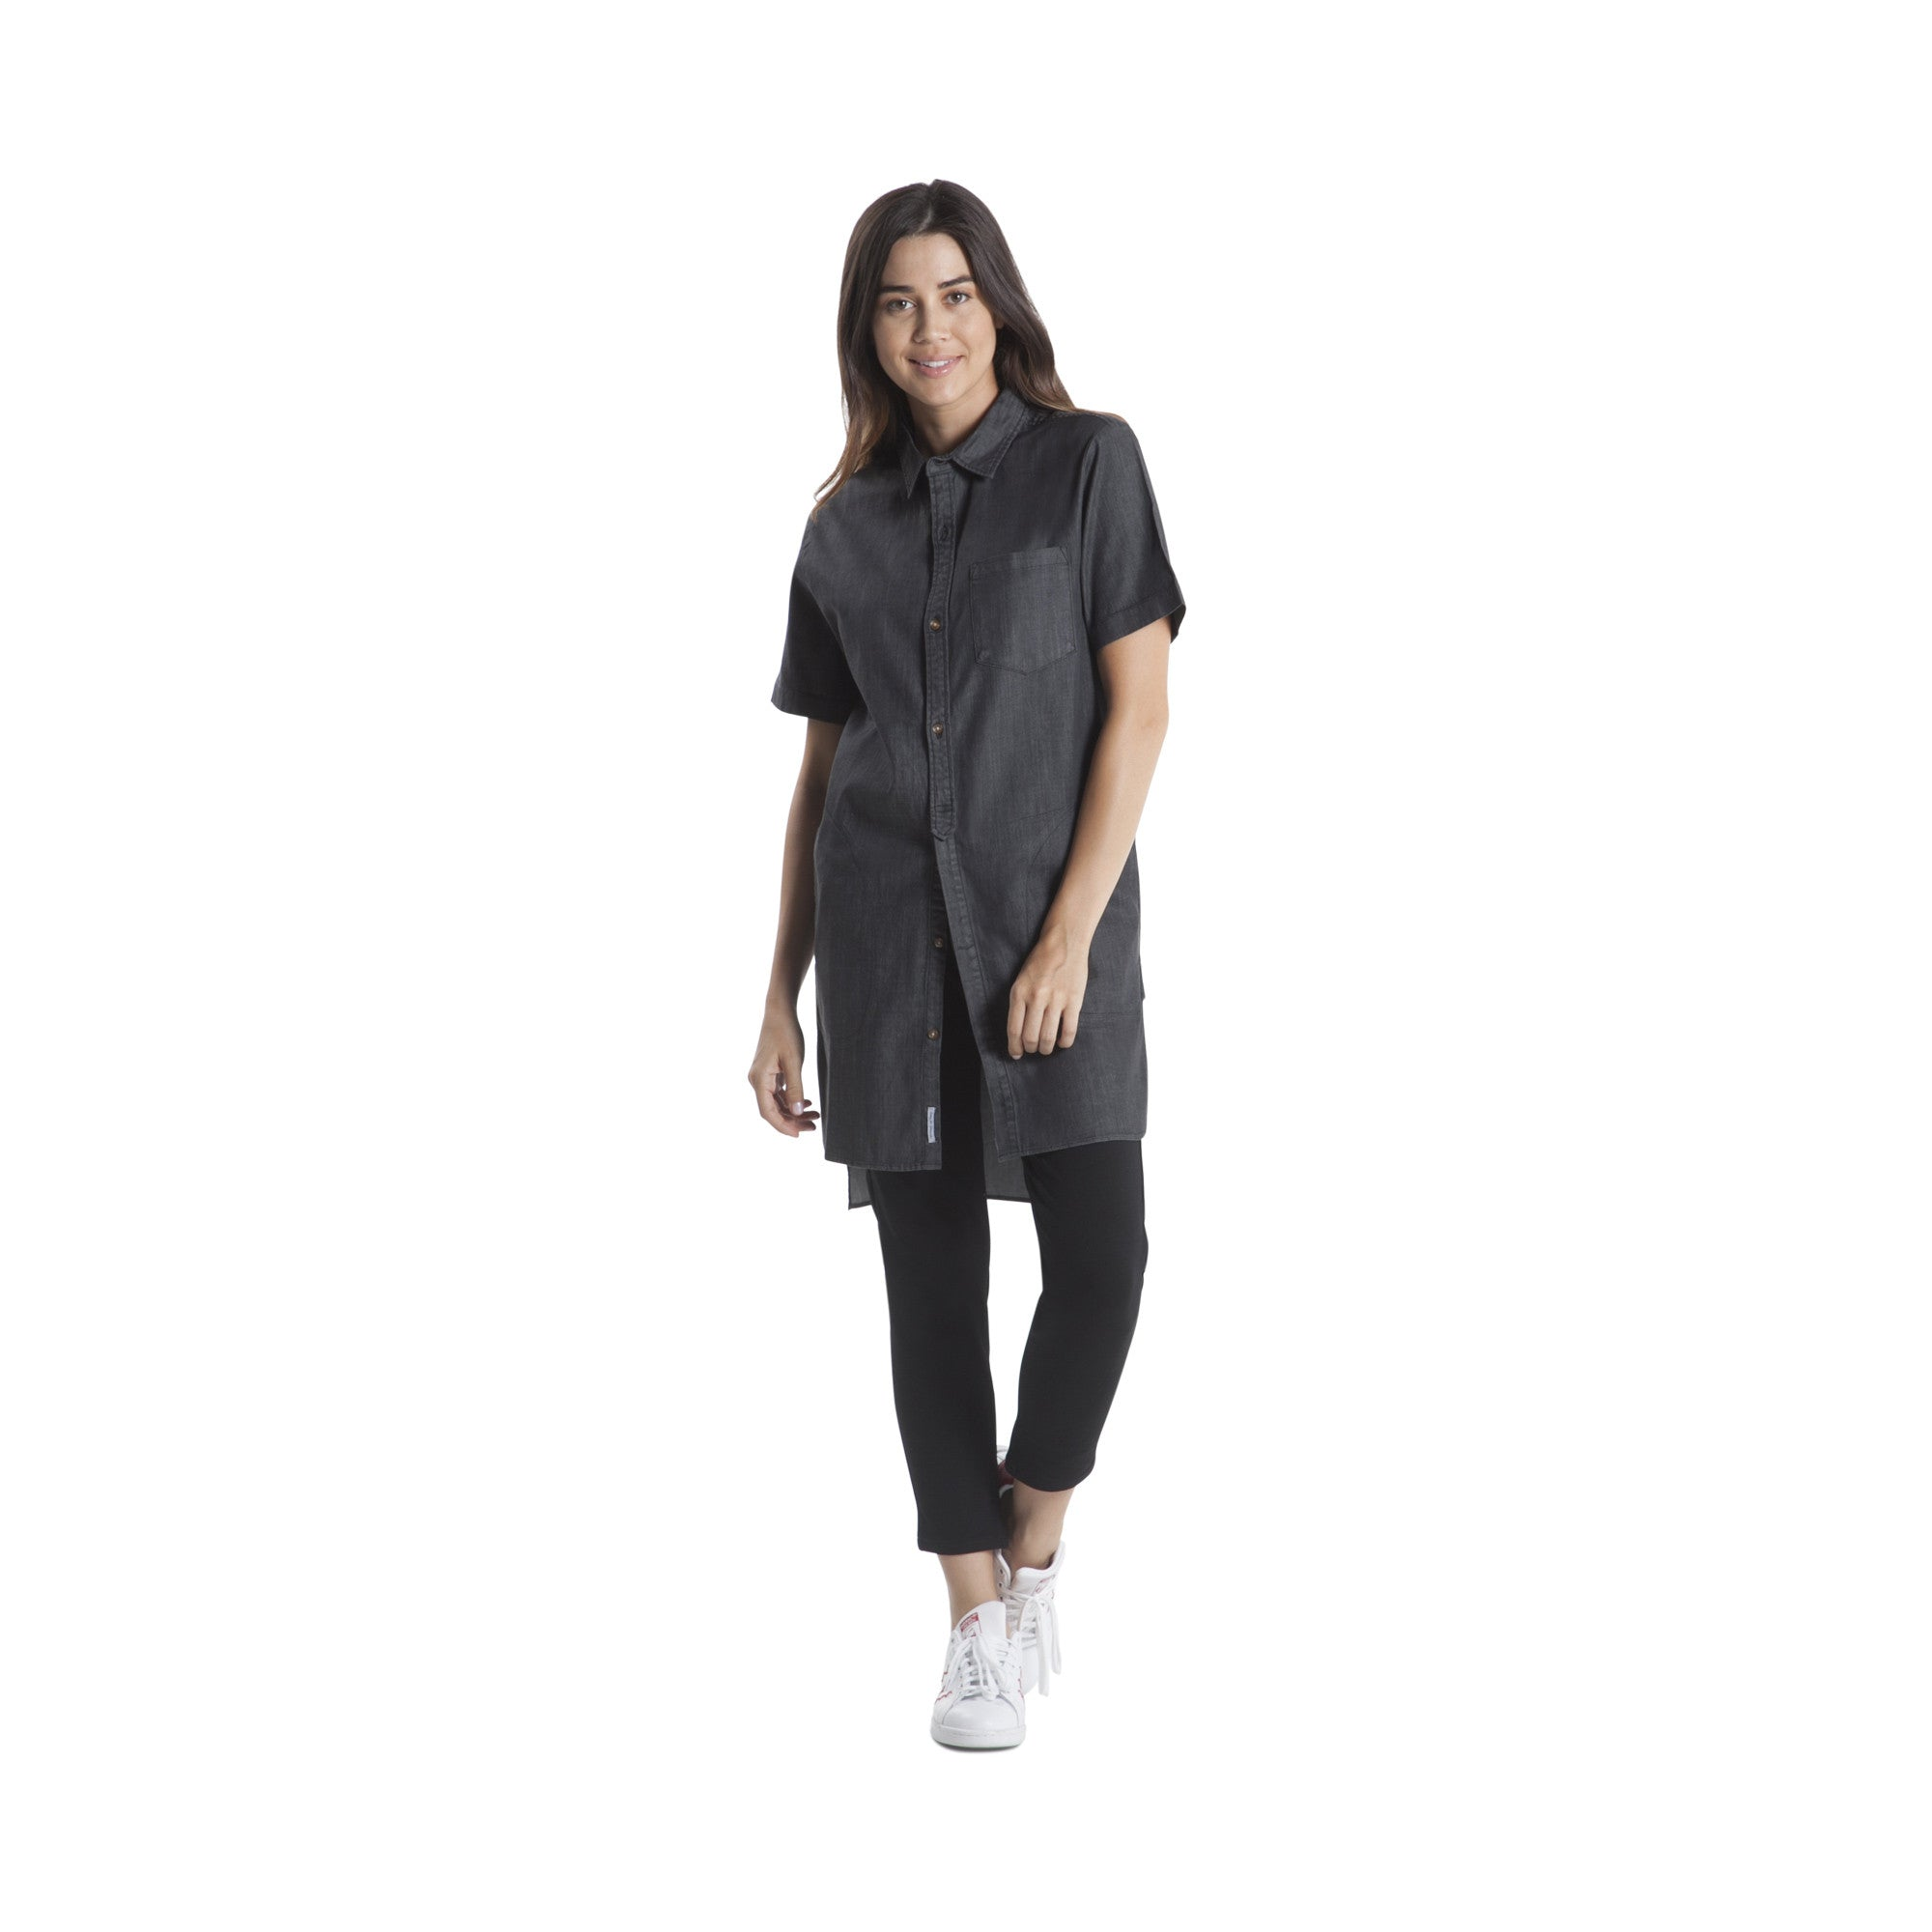 Sybil - Shirt Dress - Black